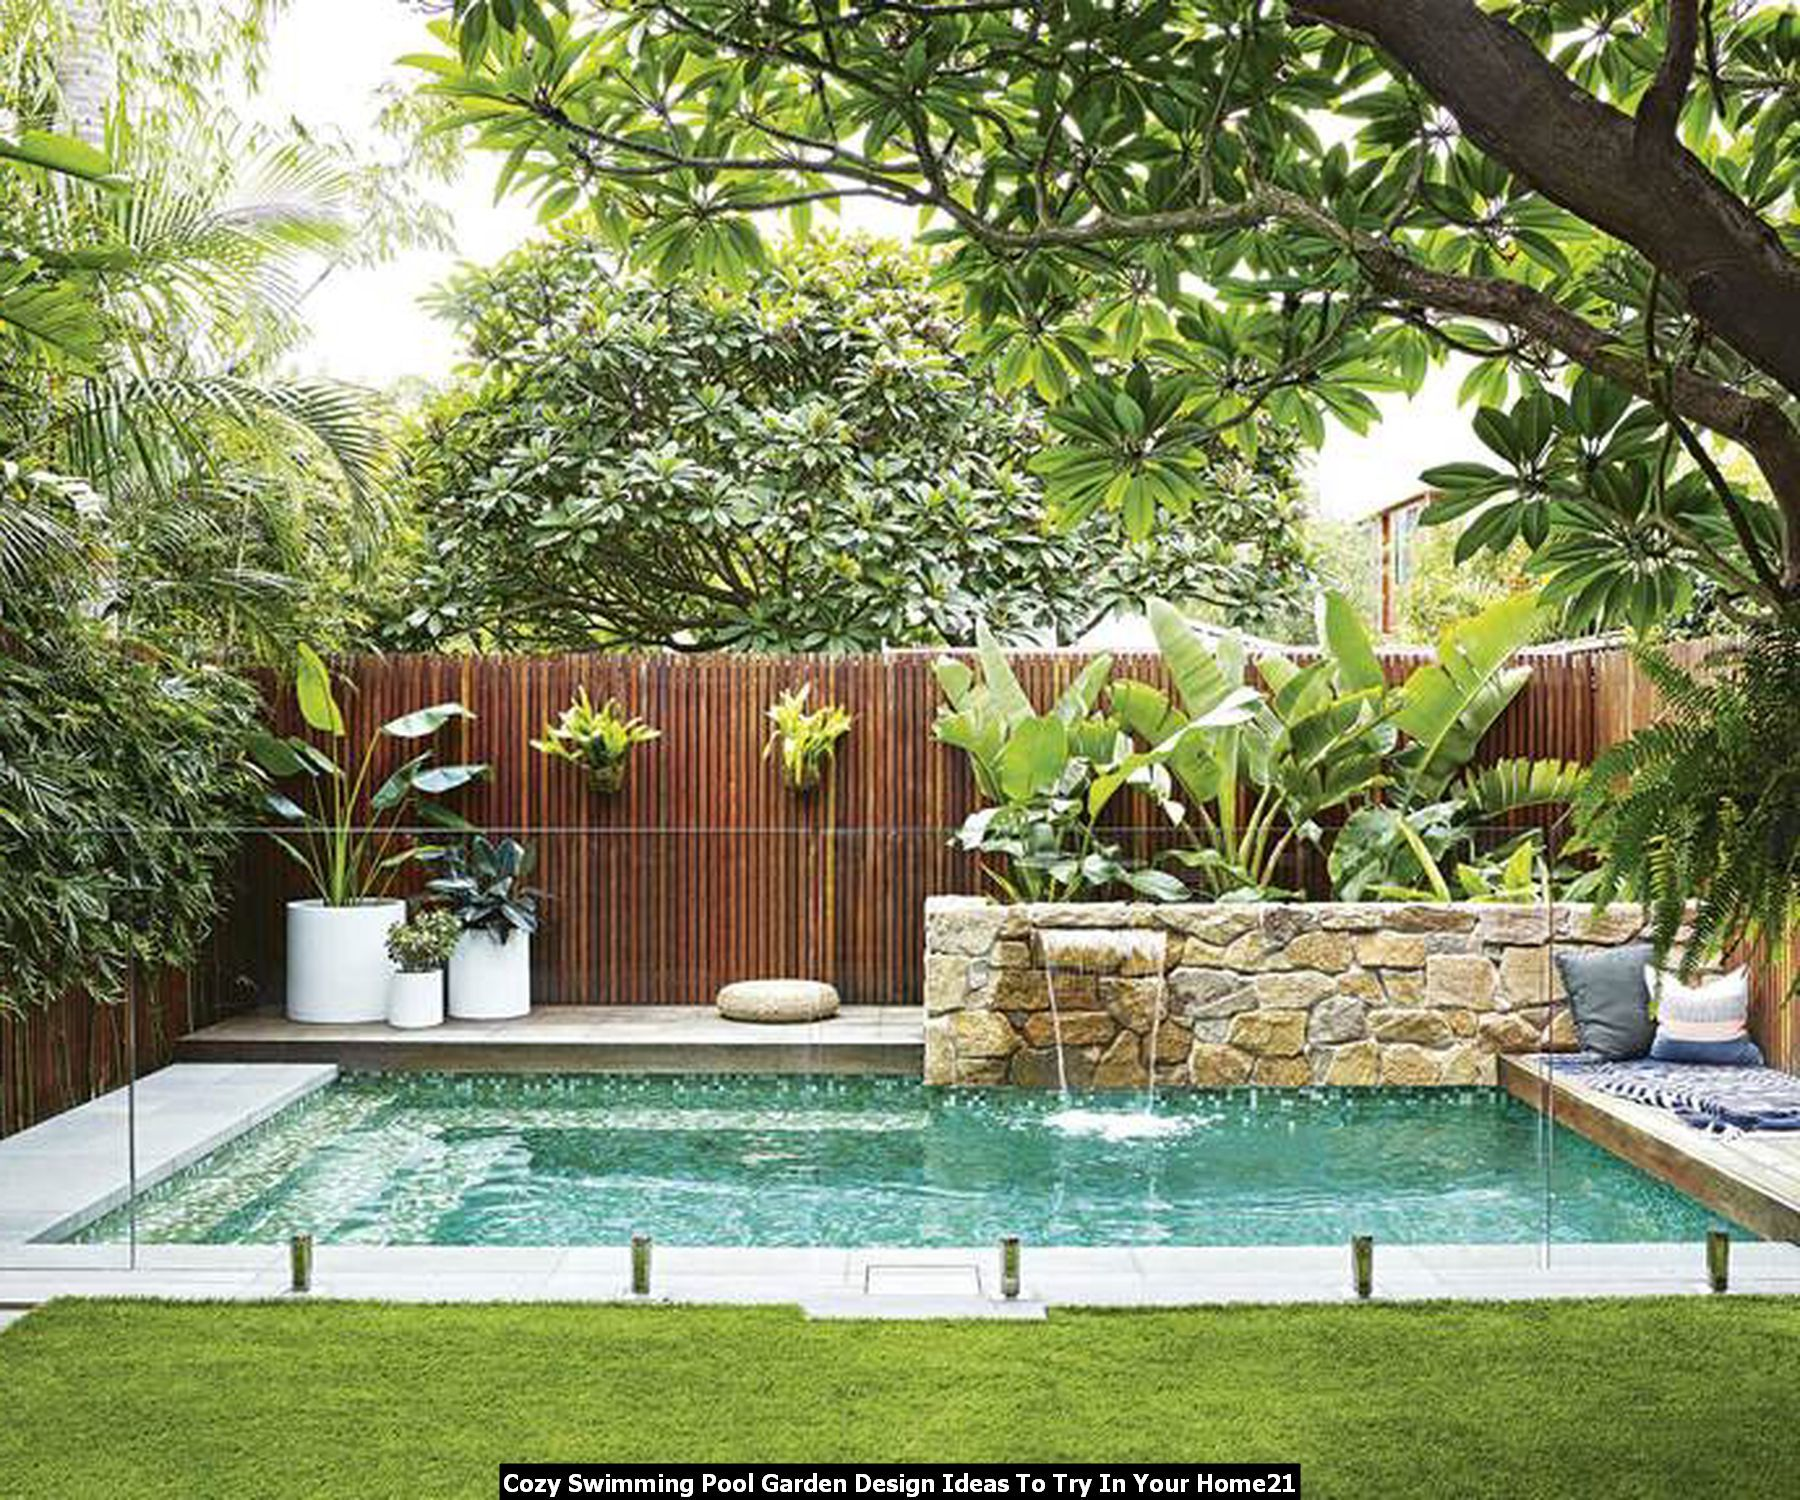 Amazing 20 Cozy Swimming Pool Garden Design Ideas To Try In Your Home Backyard Pool Landscaping Luxury Pools Backyard Small Backyard Pools